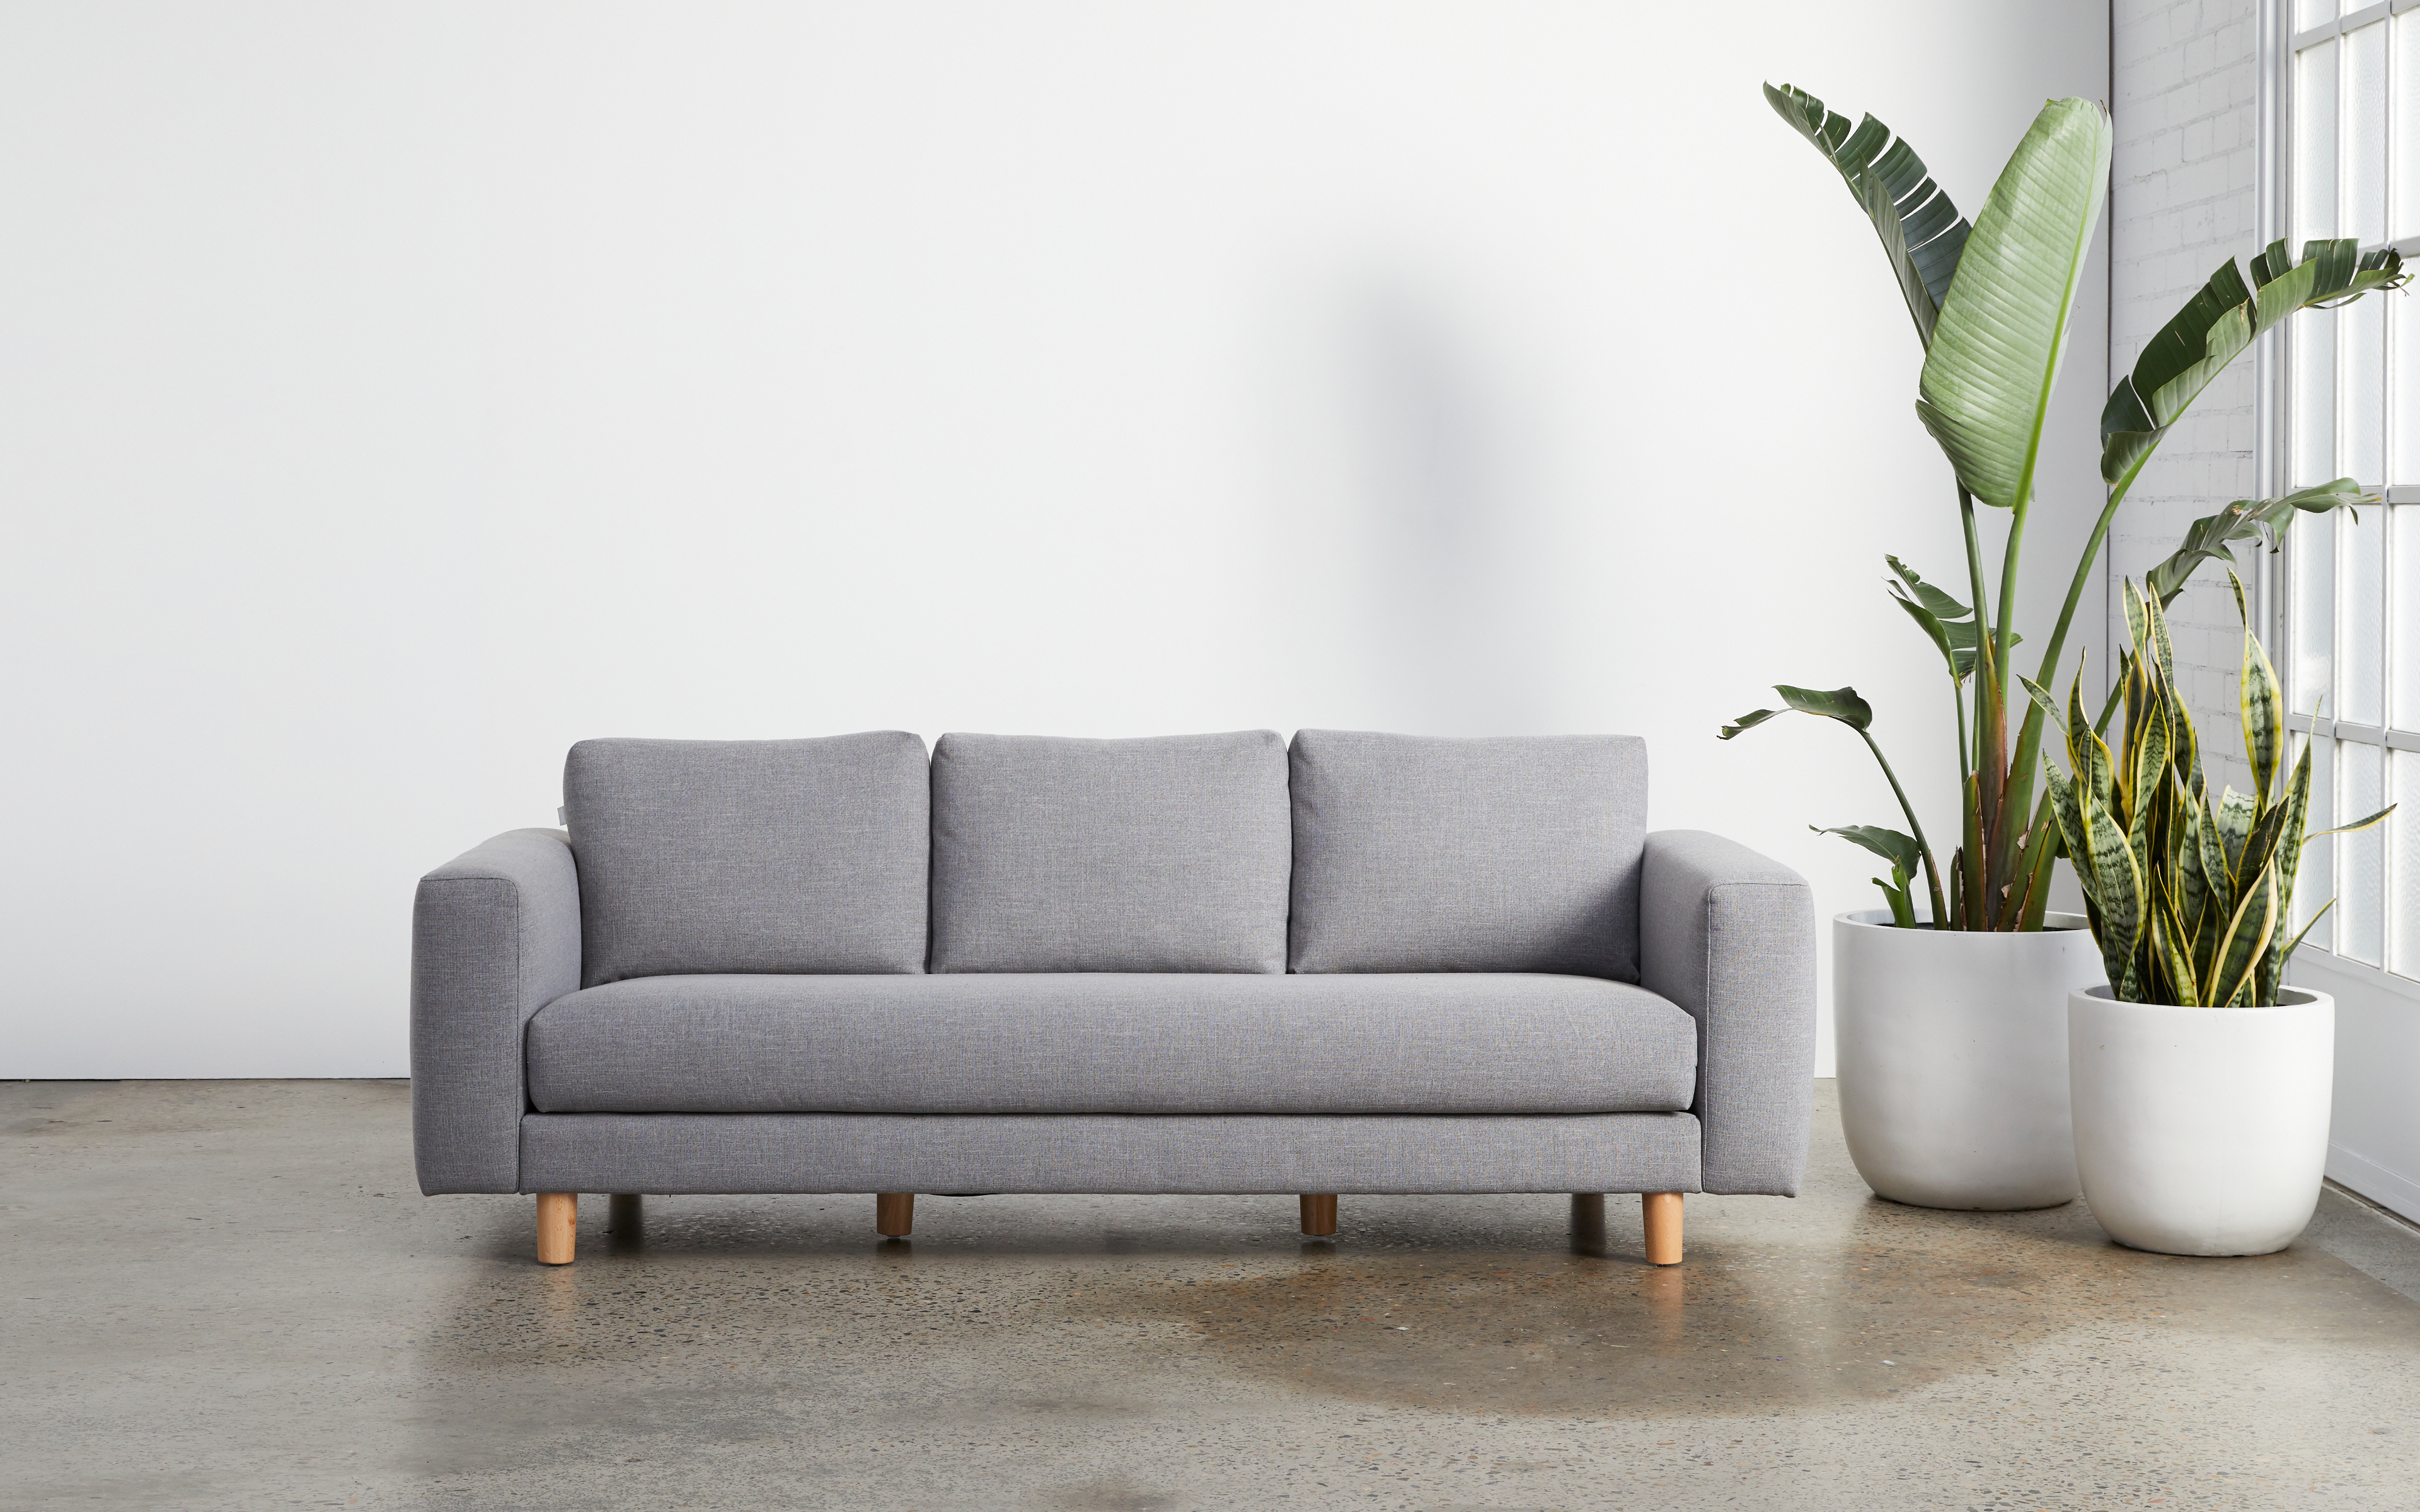 Koala Lounging Sofa - Koala Lounging Sofa